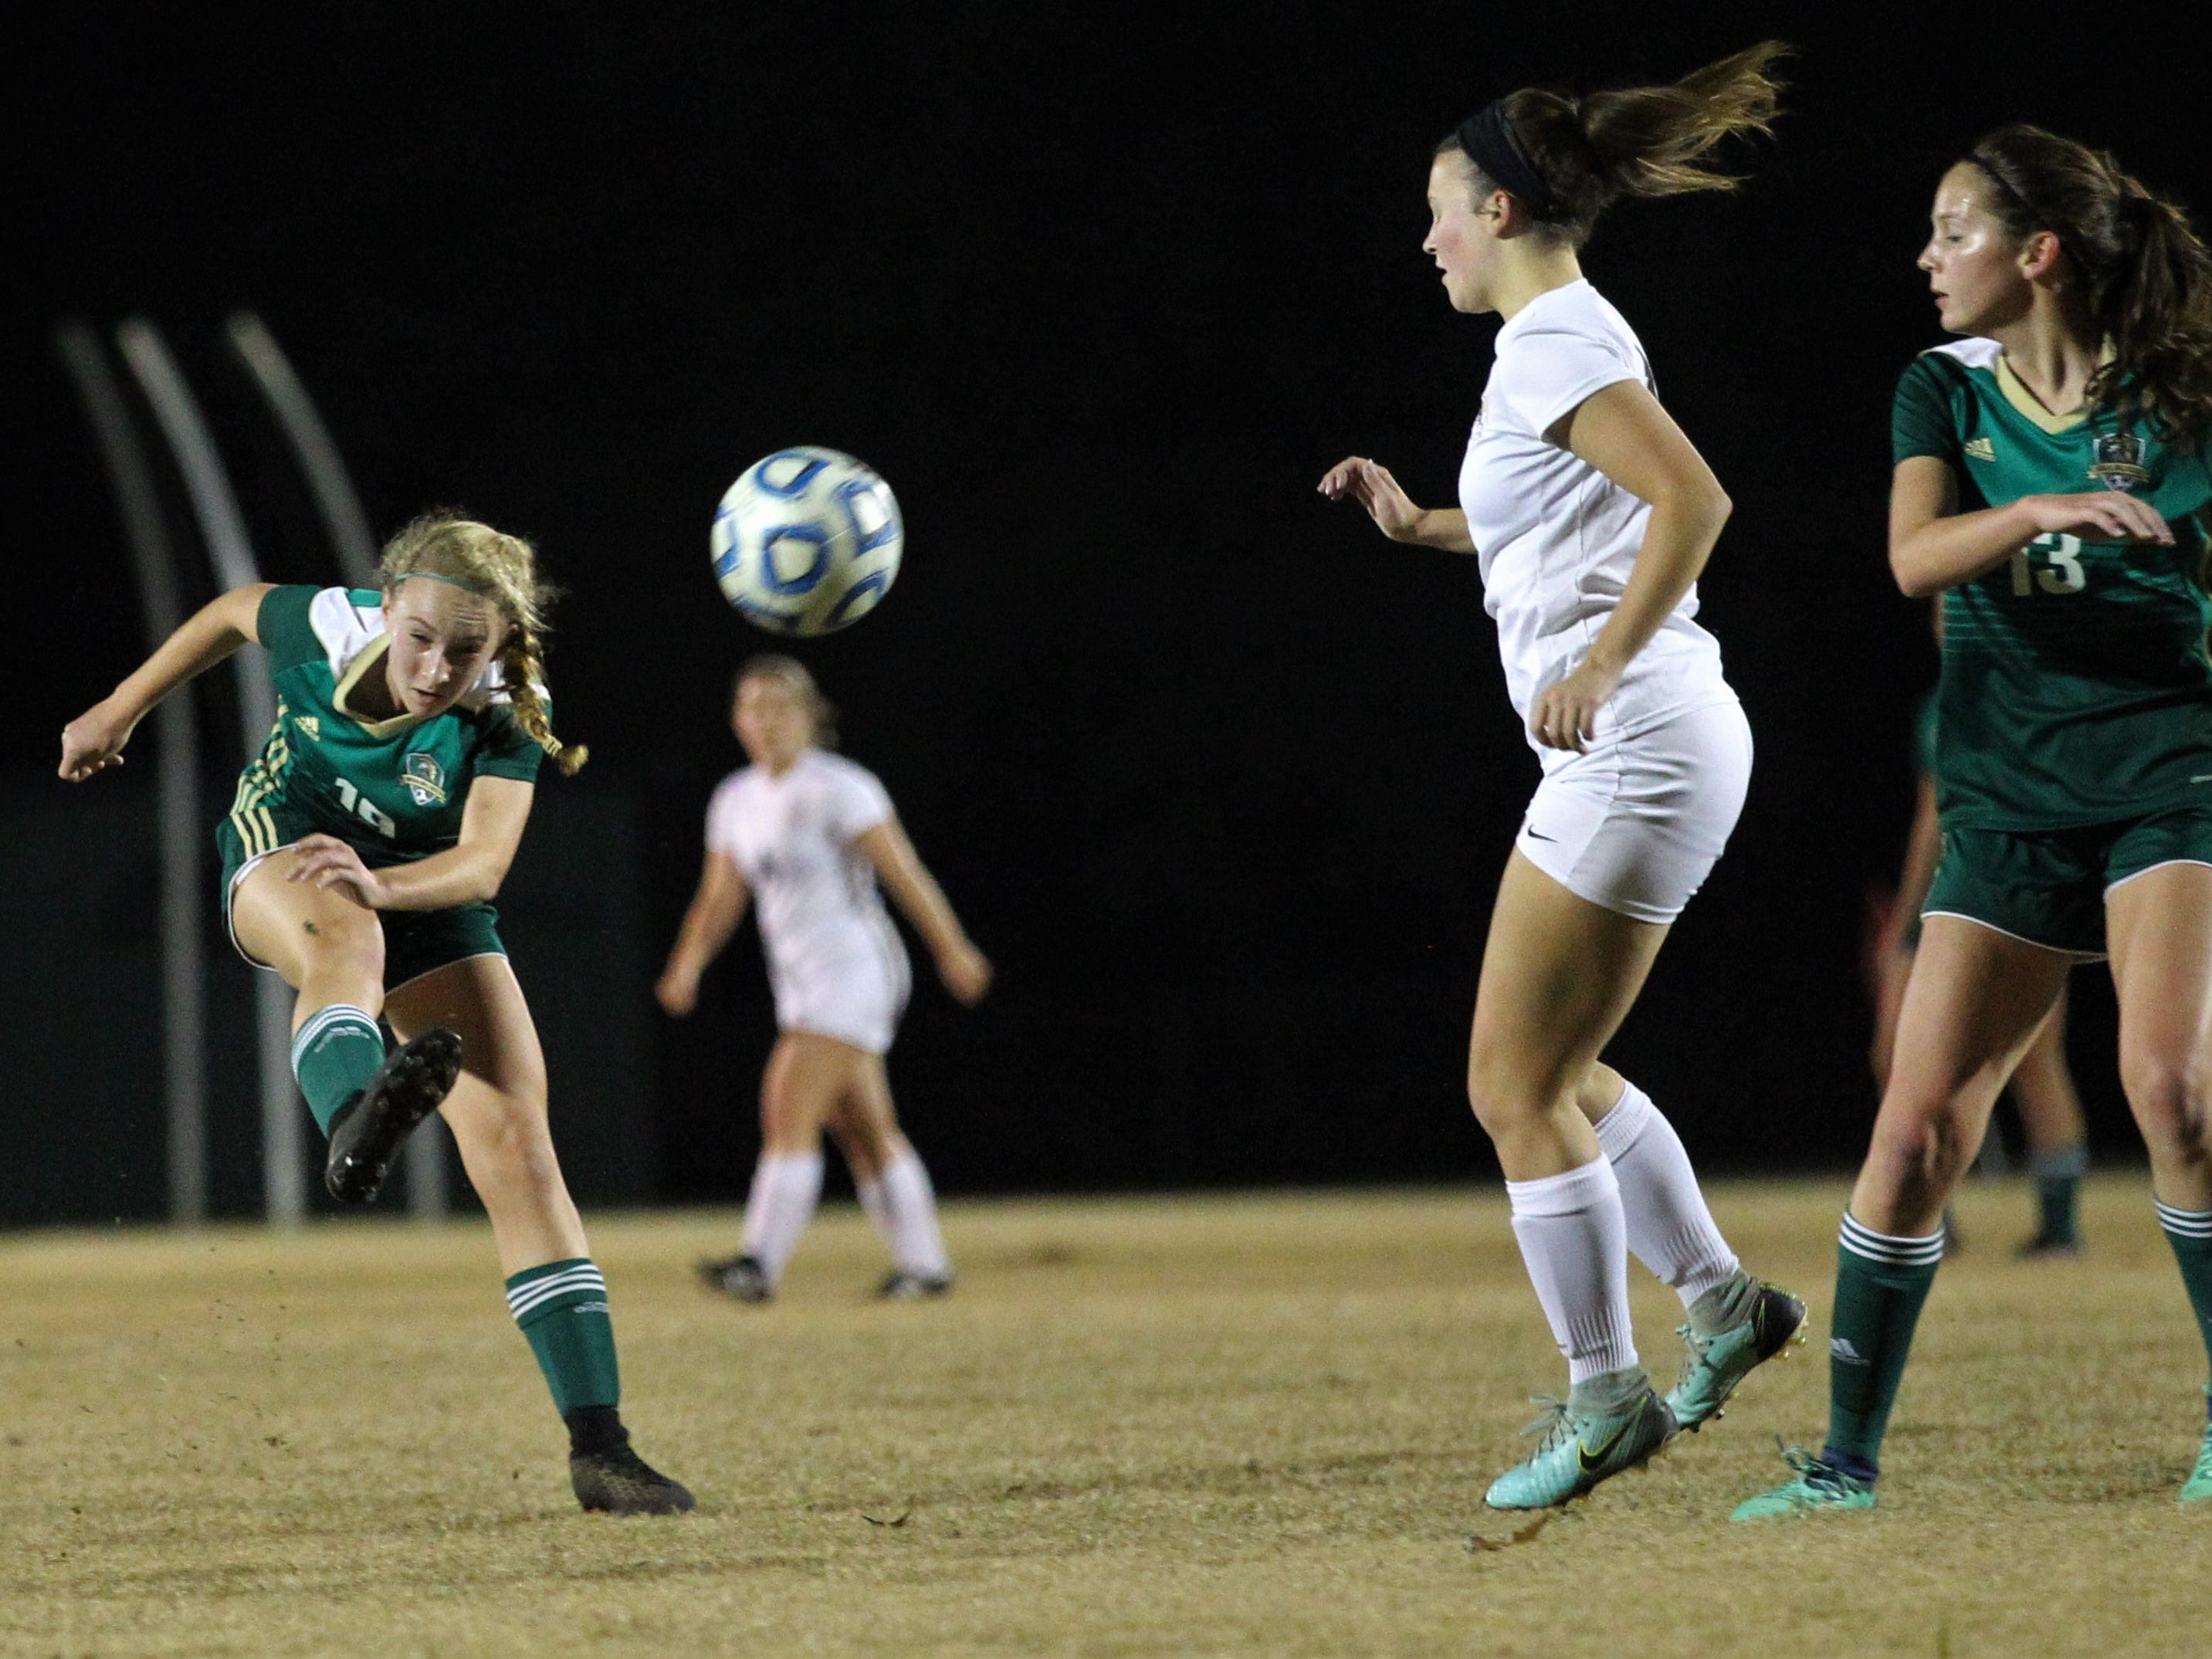 Lincoln's Lexi Gray takes a shot, but Leon beat Lincoln 2-1 on Monday, Dec. 17, 2018.